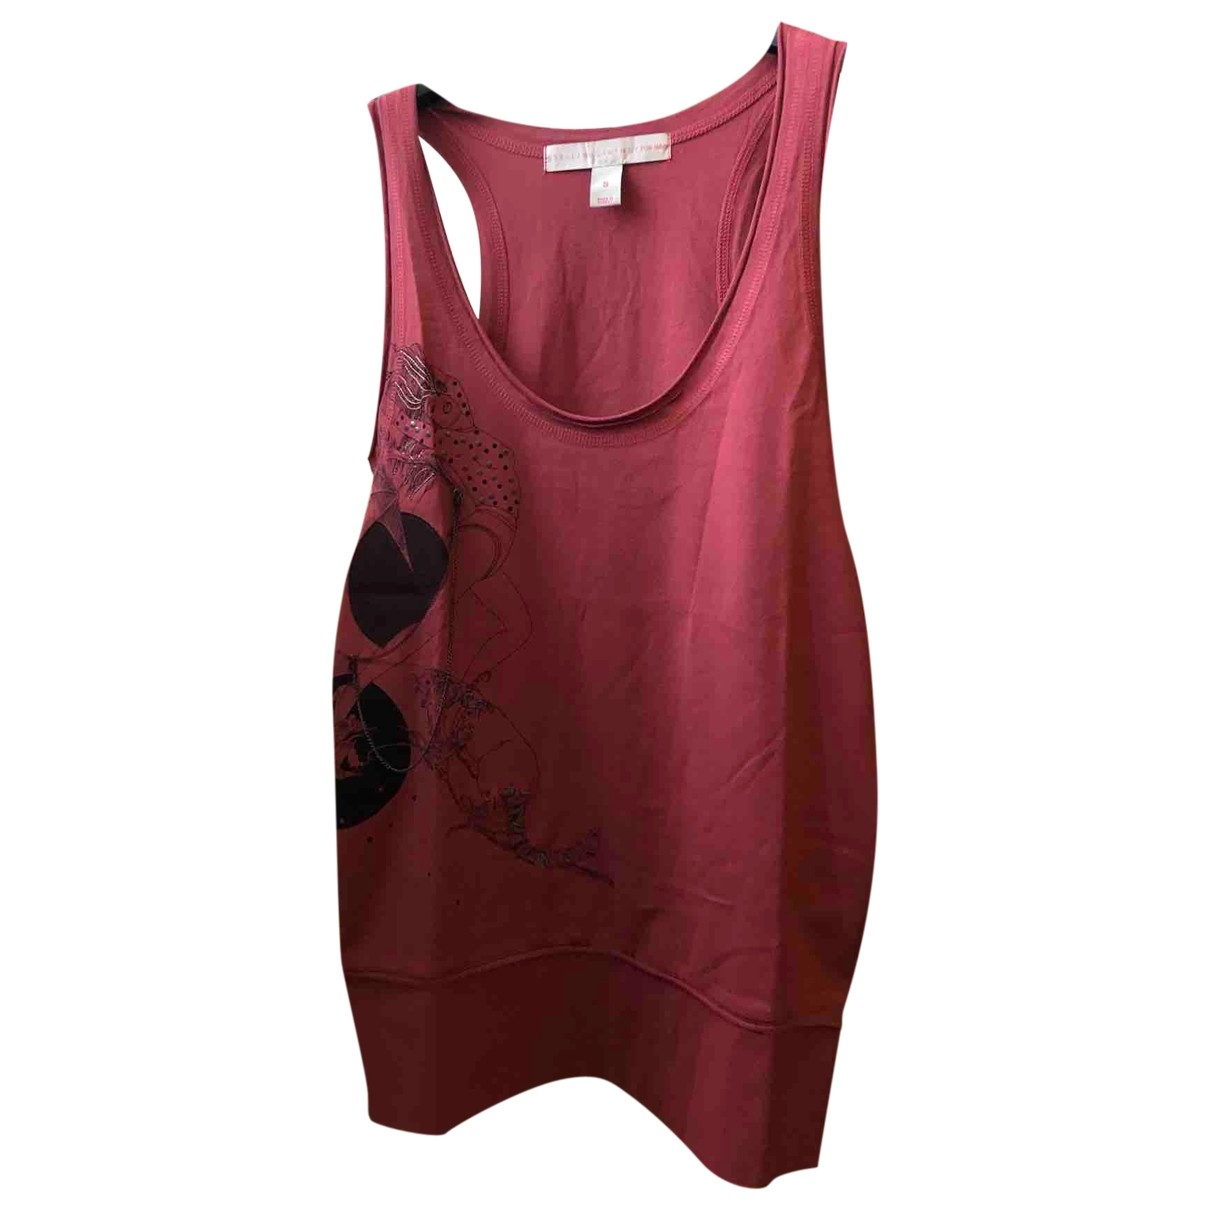 Stella Mccartney For H&m \N Pink Cotton  top for Women S International